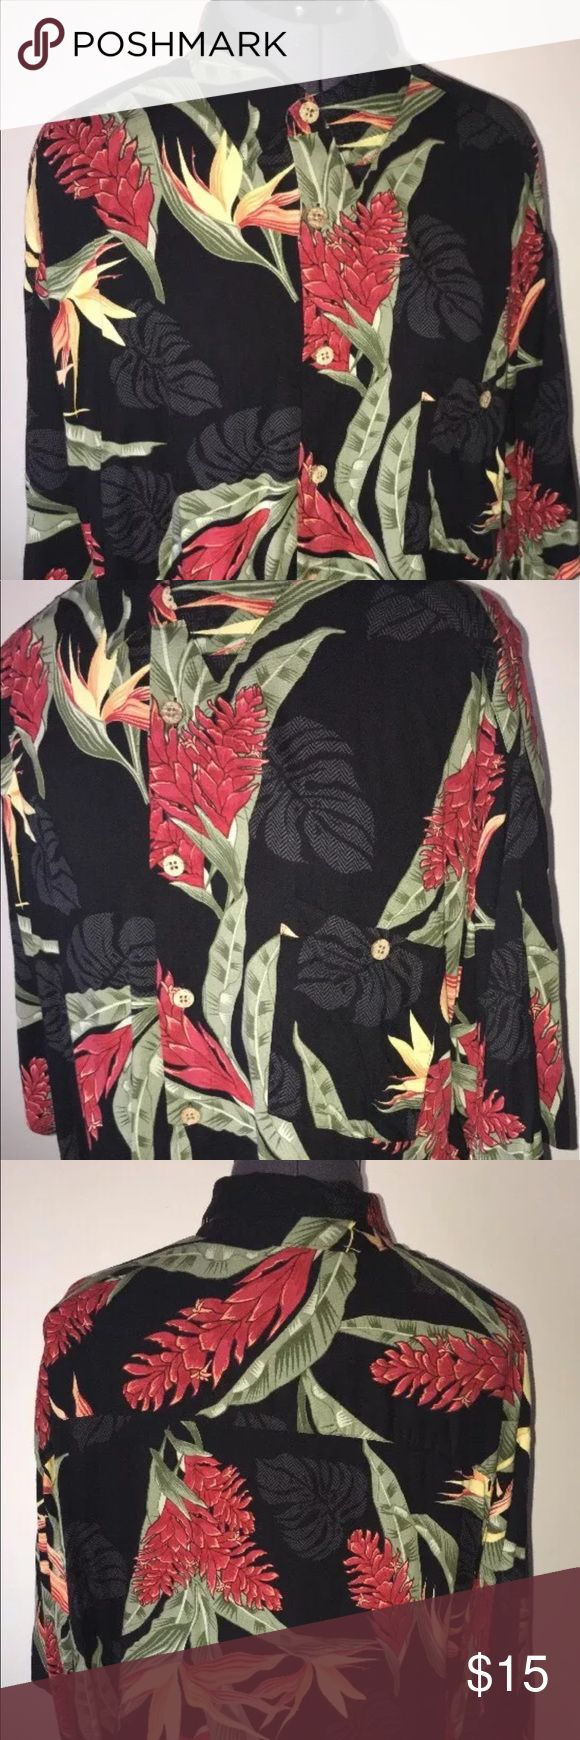 Men's New Puritan Hawaiian black silk shirt XL 🌴 Hello! In this listing you are purchasing a brand new men's Puritan black floral style shirt! This beautifully crafted shirt is a size XL and measures 21 inches across the front chest and top to bottom is 28.5 inches long. This luxurious and soft item is made from 100 % viscose rayon for that silky feel & fit! Grab this cool baby before it's gone! Puritan Shirts Casual Button Down Shirts